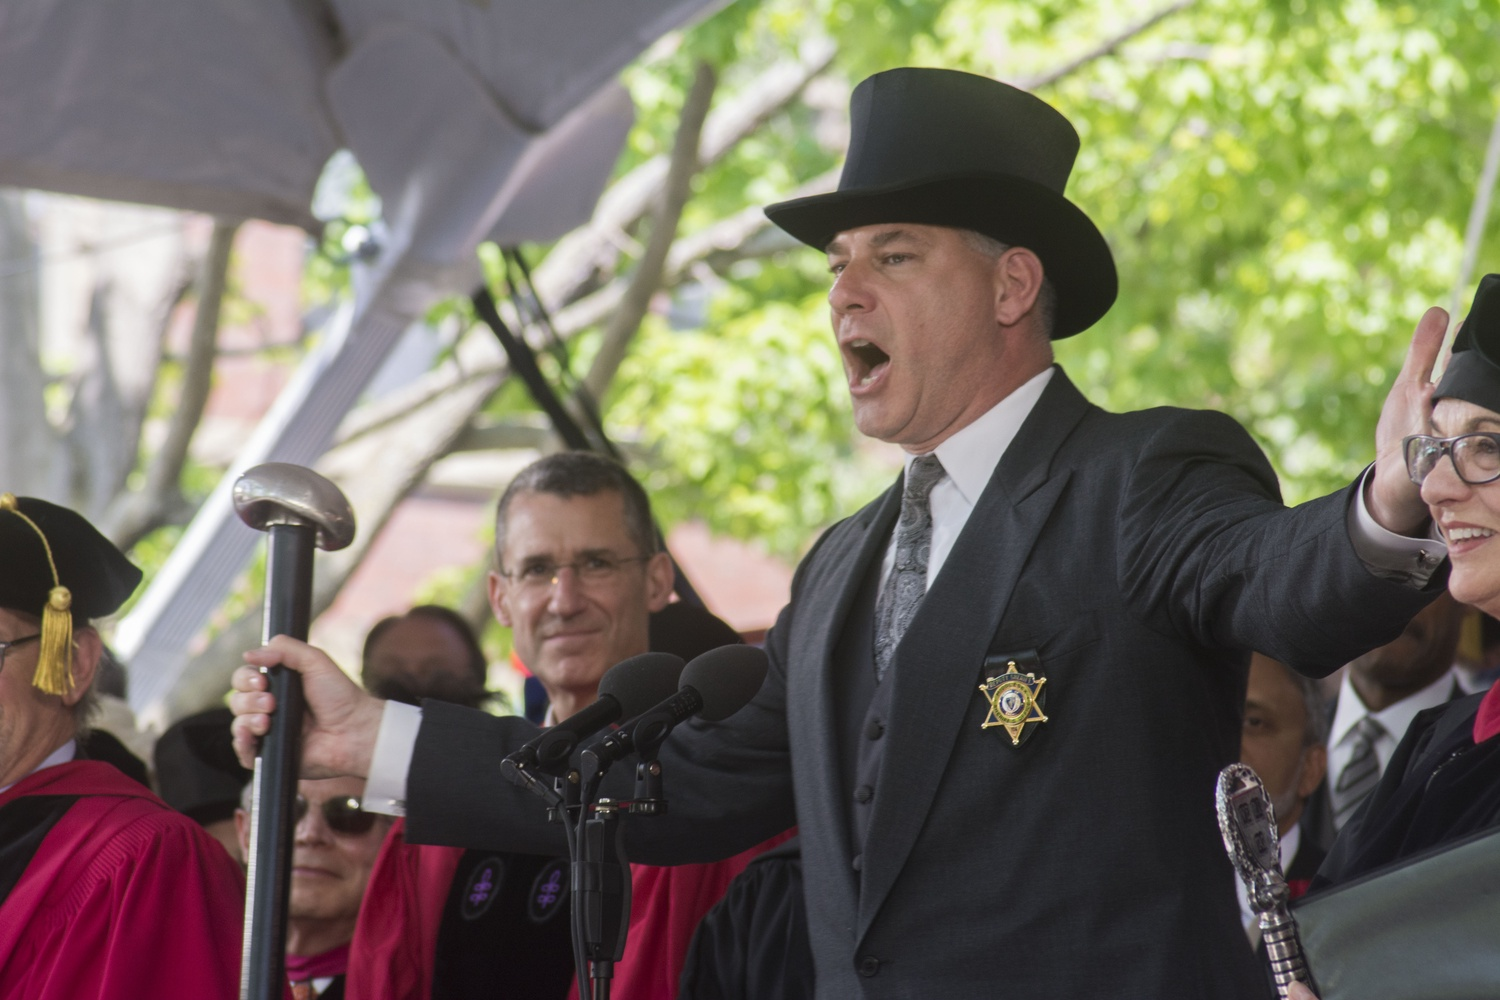 The Sheriff of Middlesex County